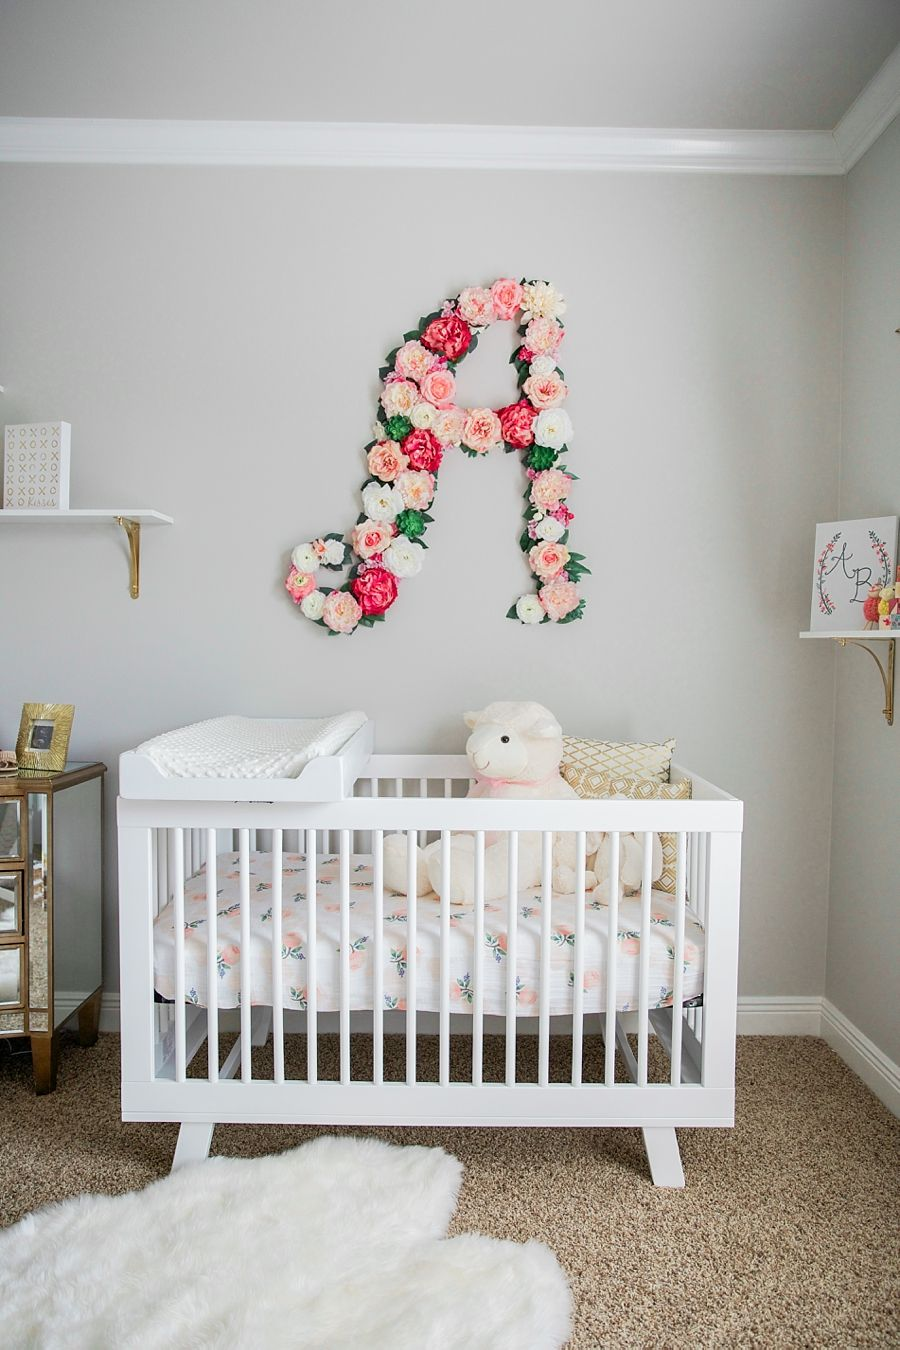 Baby Girl Nursery Themes Baby girl nursery with floral wall | Shop. Rent. Consign.  MotherhoodCloset.com Maternity Consignment